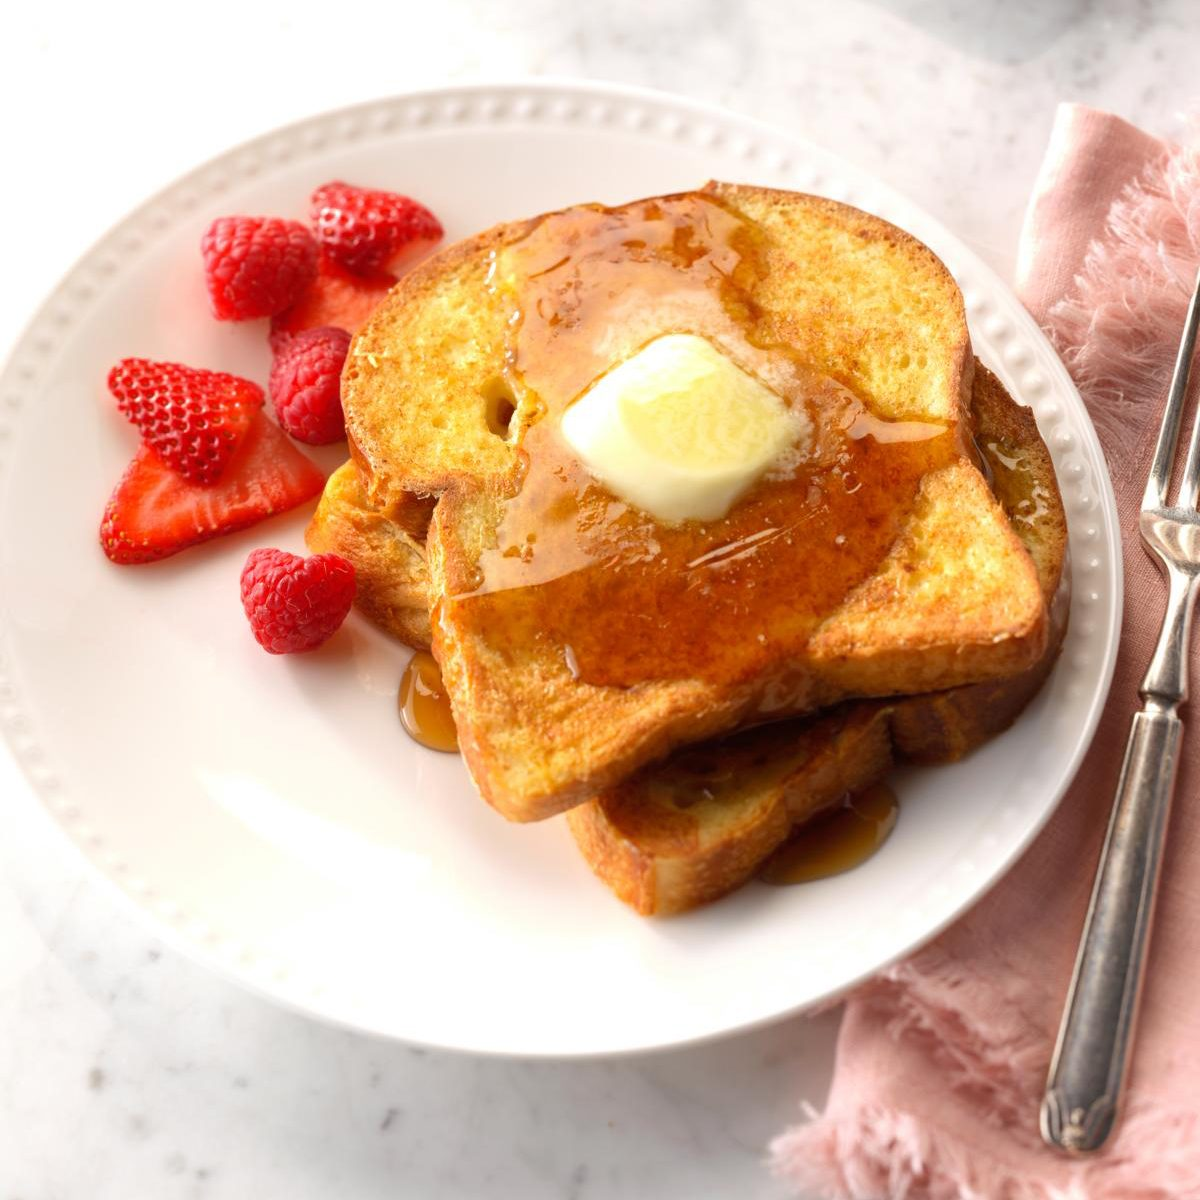 French toast with strawberries on side